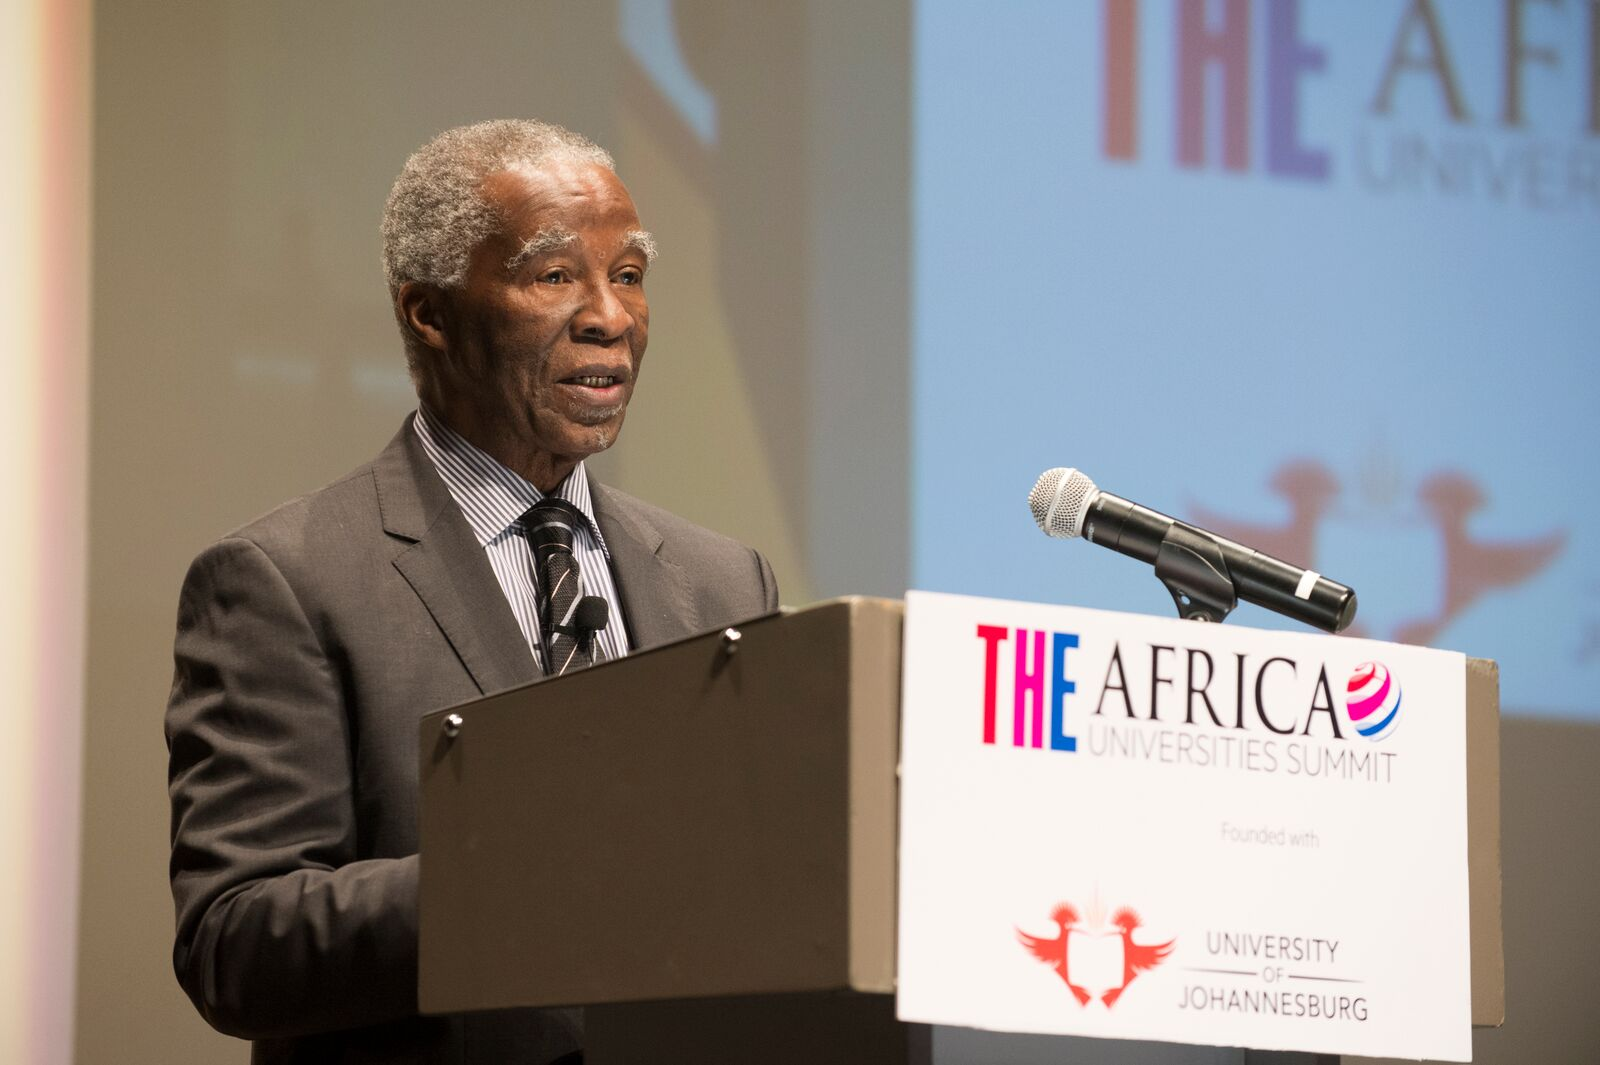 Thabo, Mbeki, South Africa, Africa Universities Summit,